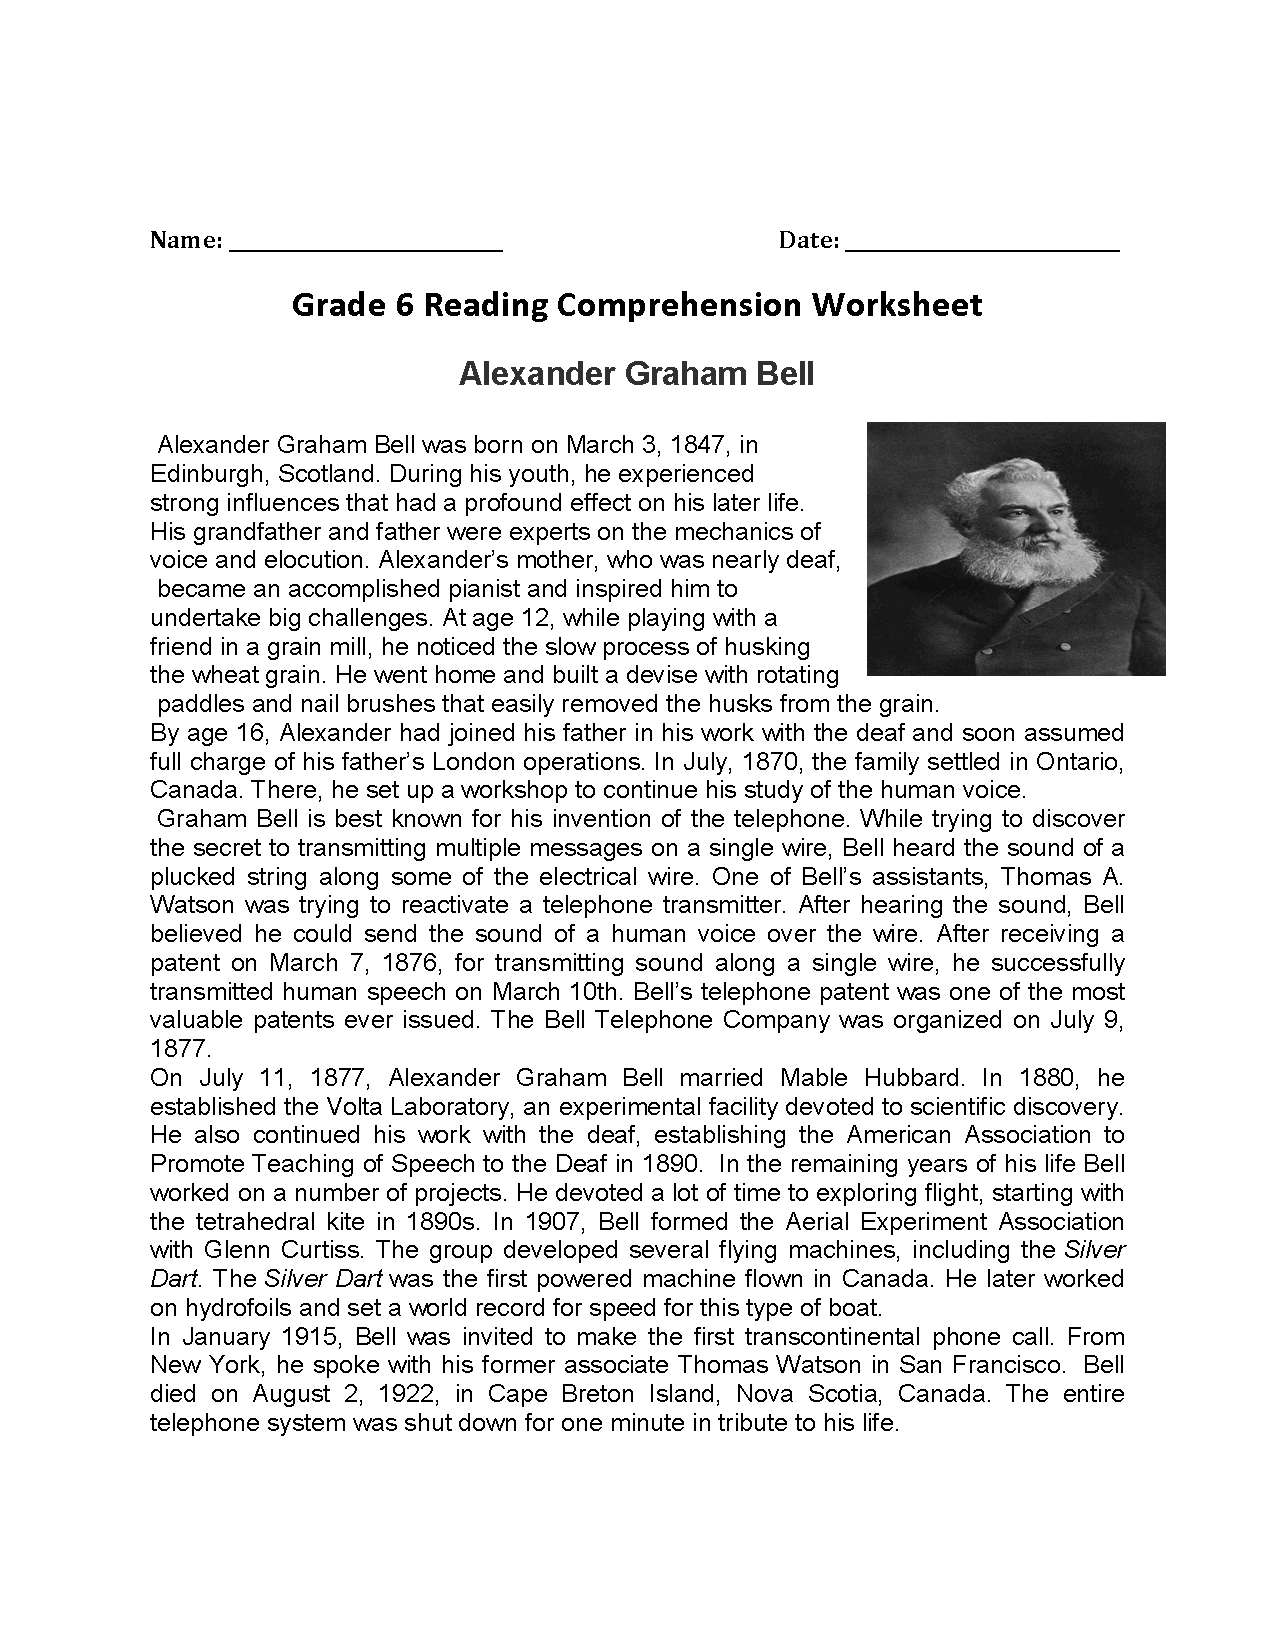 Worksheets Sixth Grade Reading Worksheets reading worksheets sixth grade alexander graham bellsixth worksheets